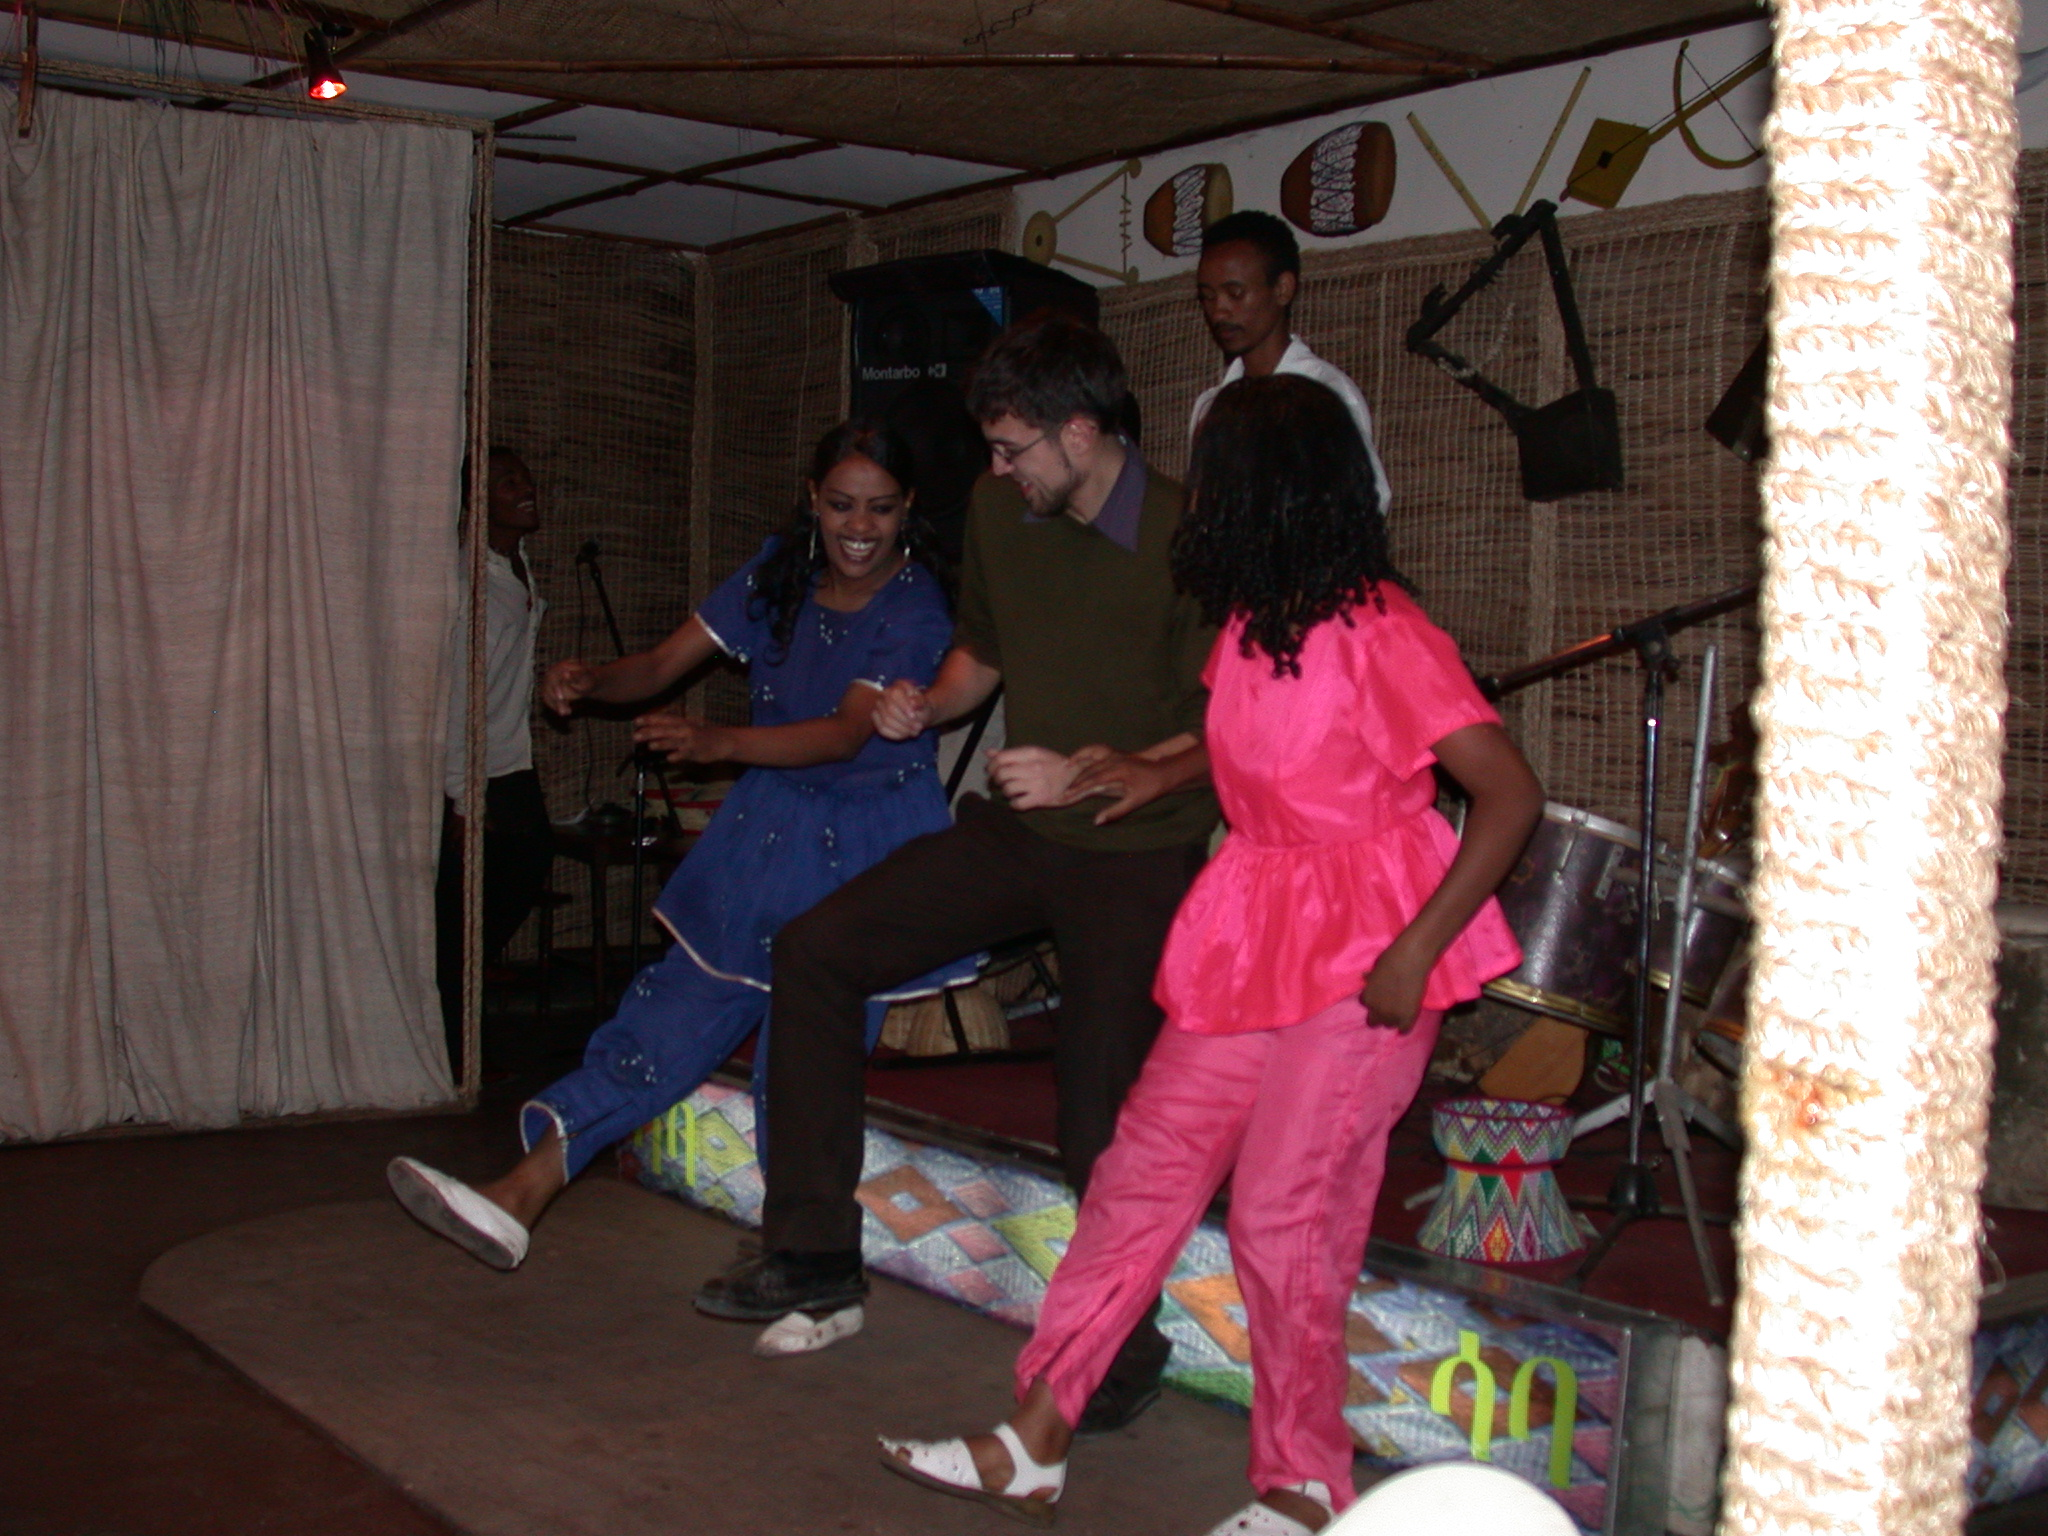 Frederick and Dancers at Saba Restaurant, Addis Ababa, Ethiopia